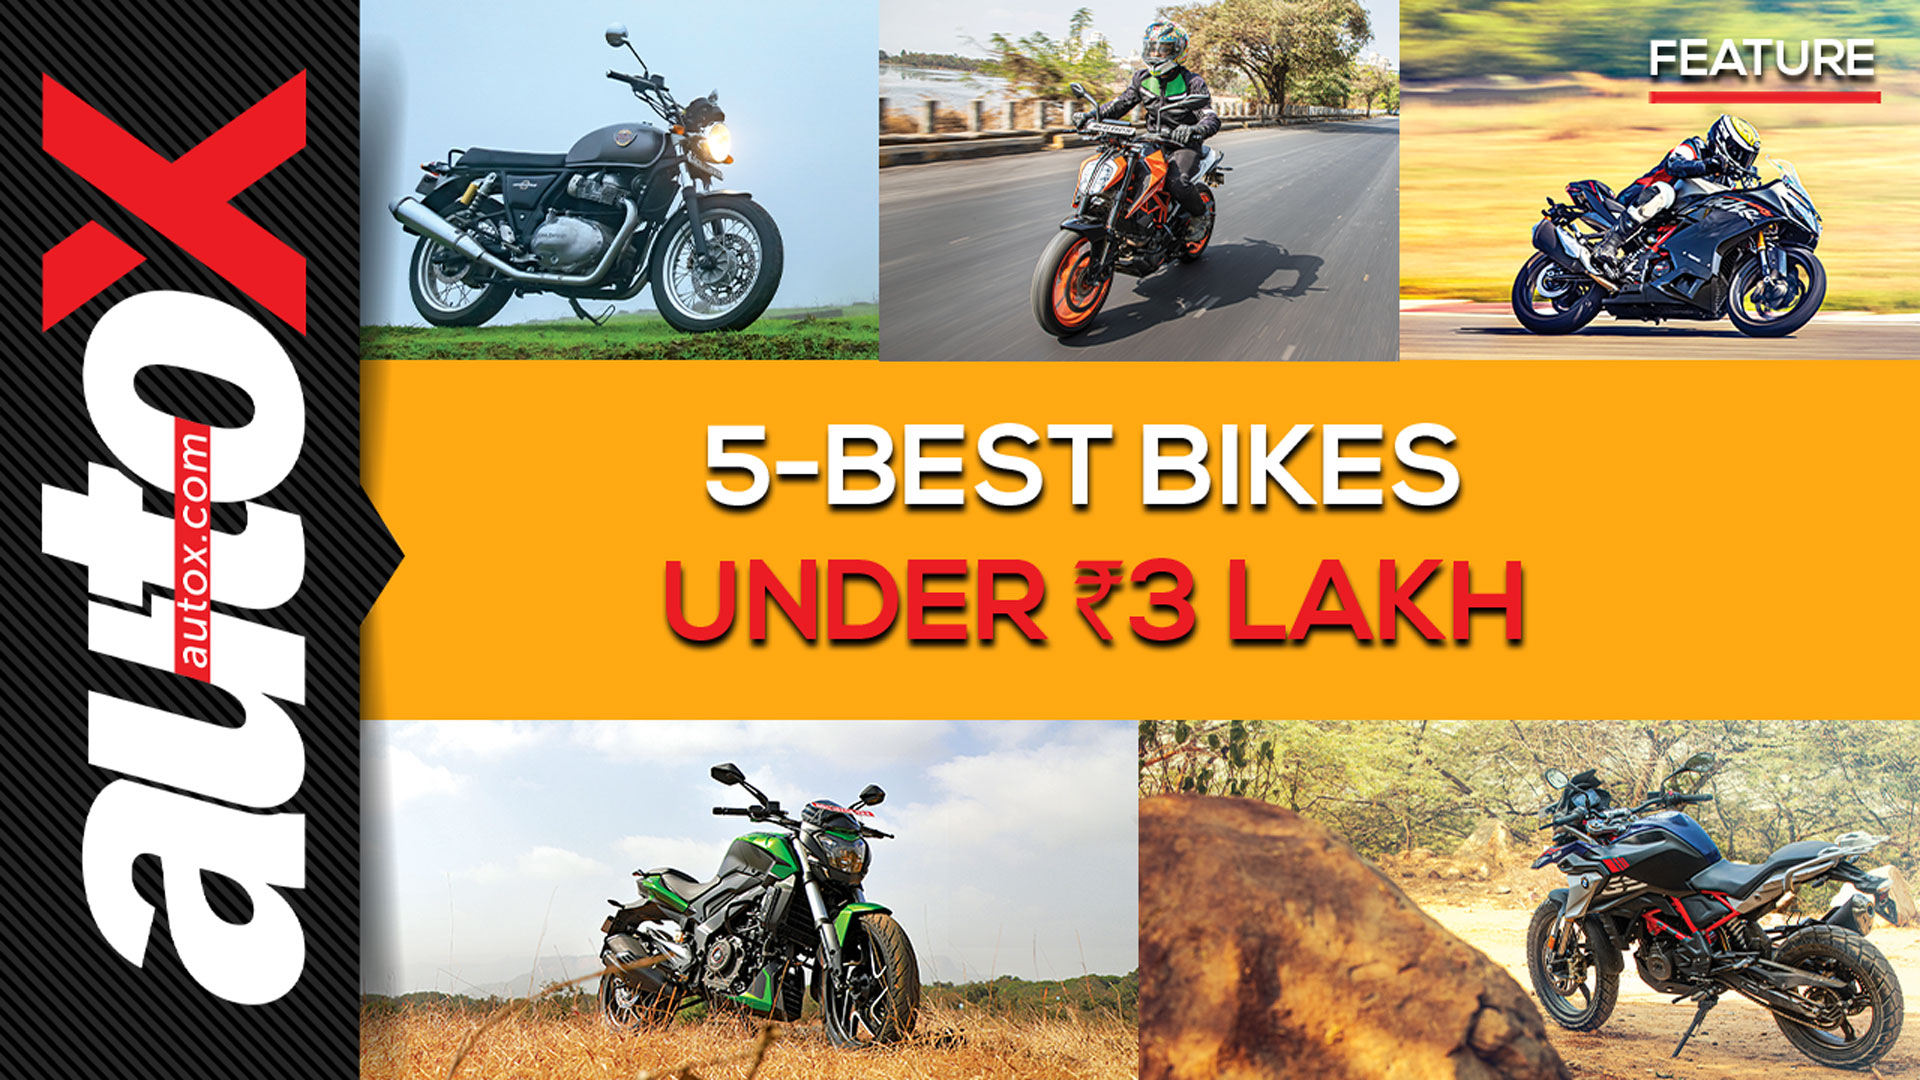 Top 5 Motorcycles Under Rs 3 Lakh | autoX